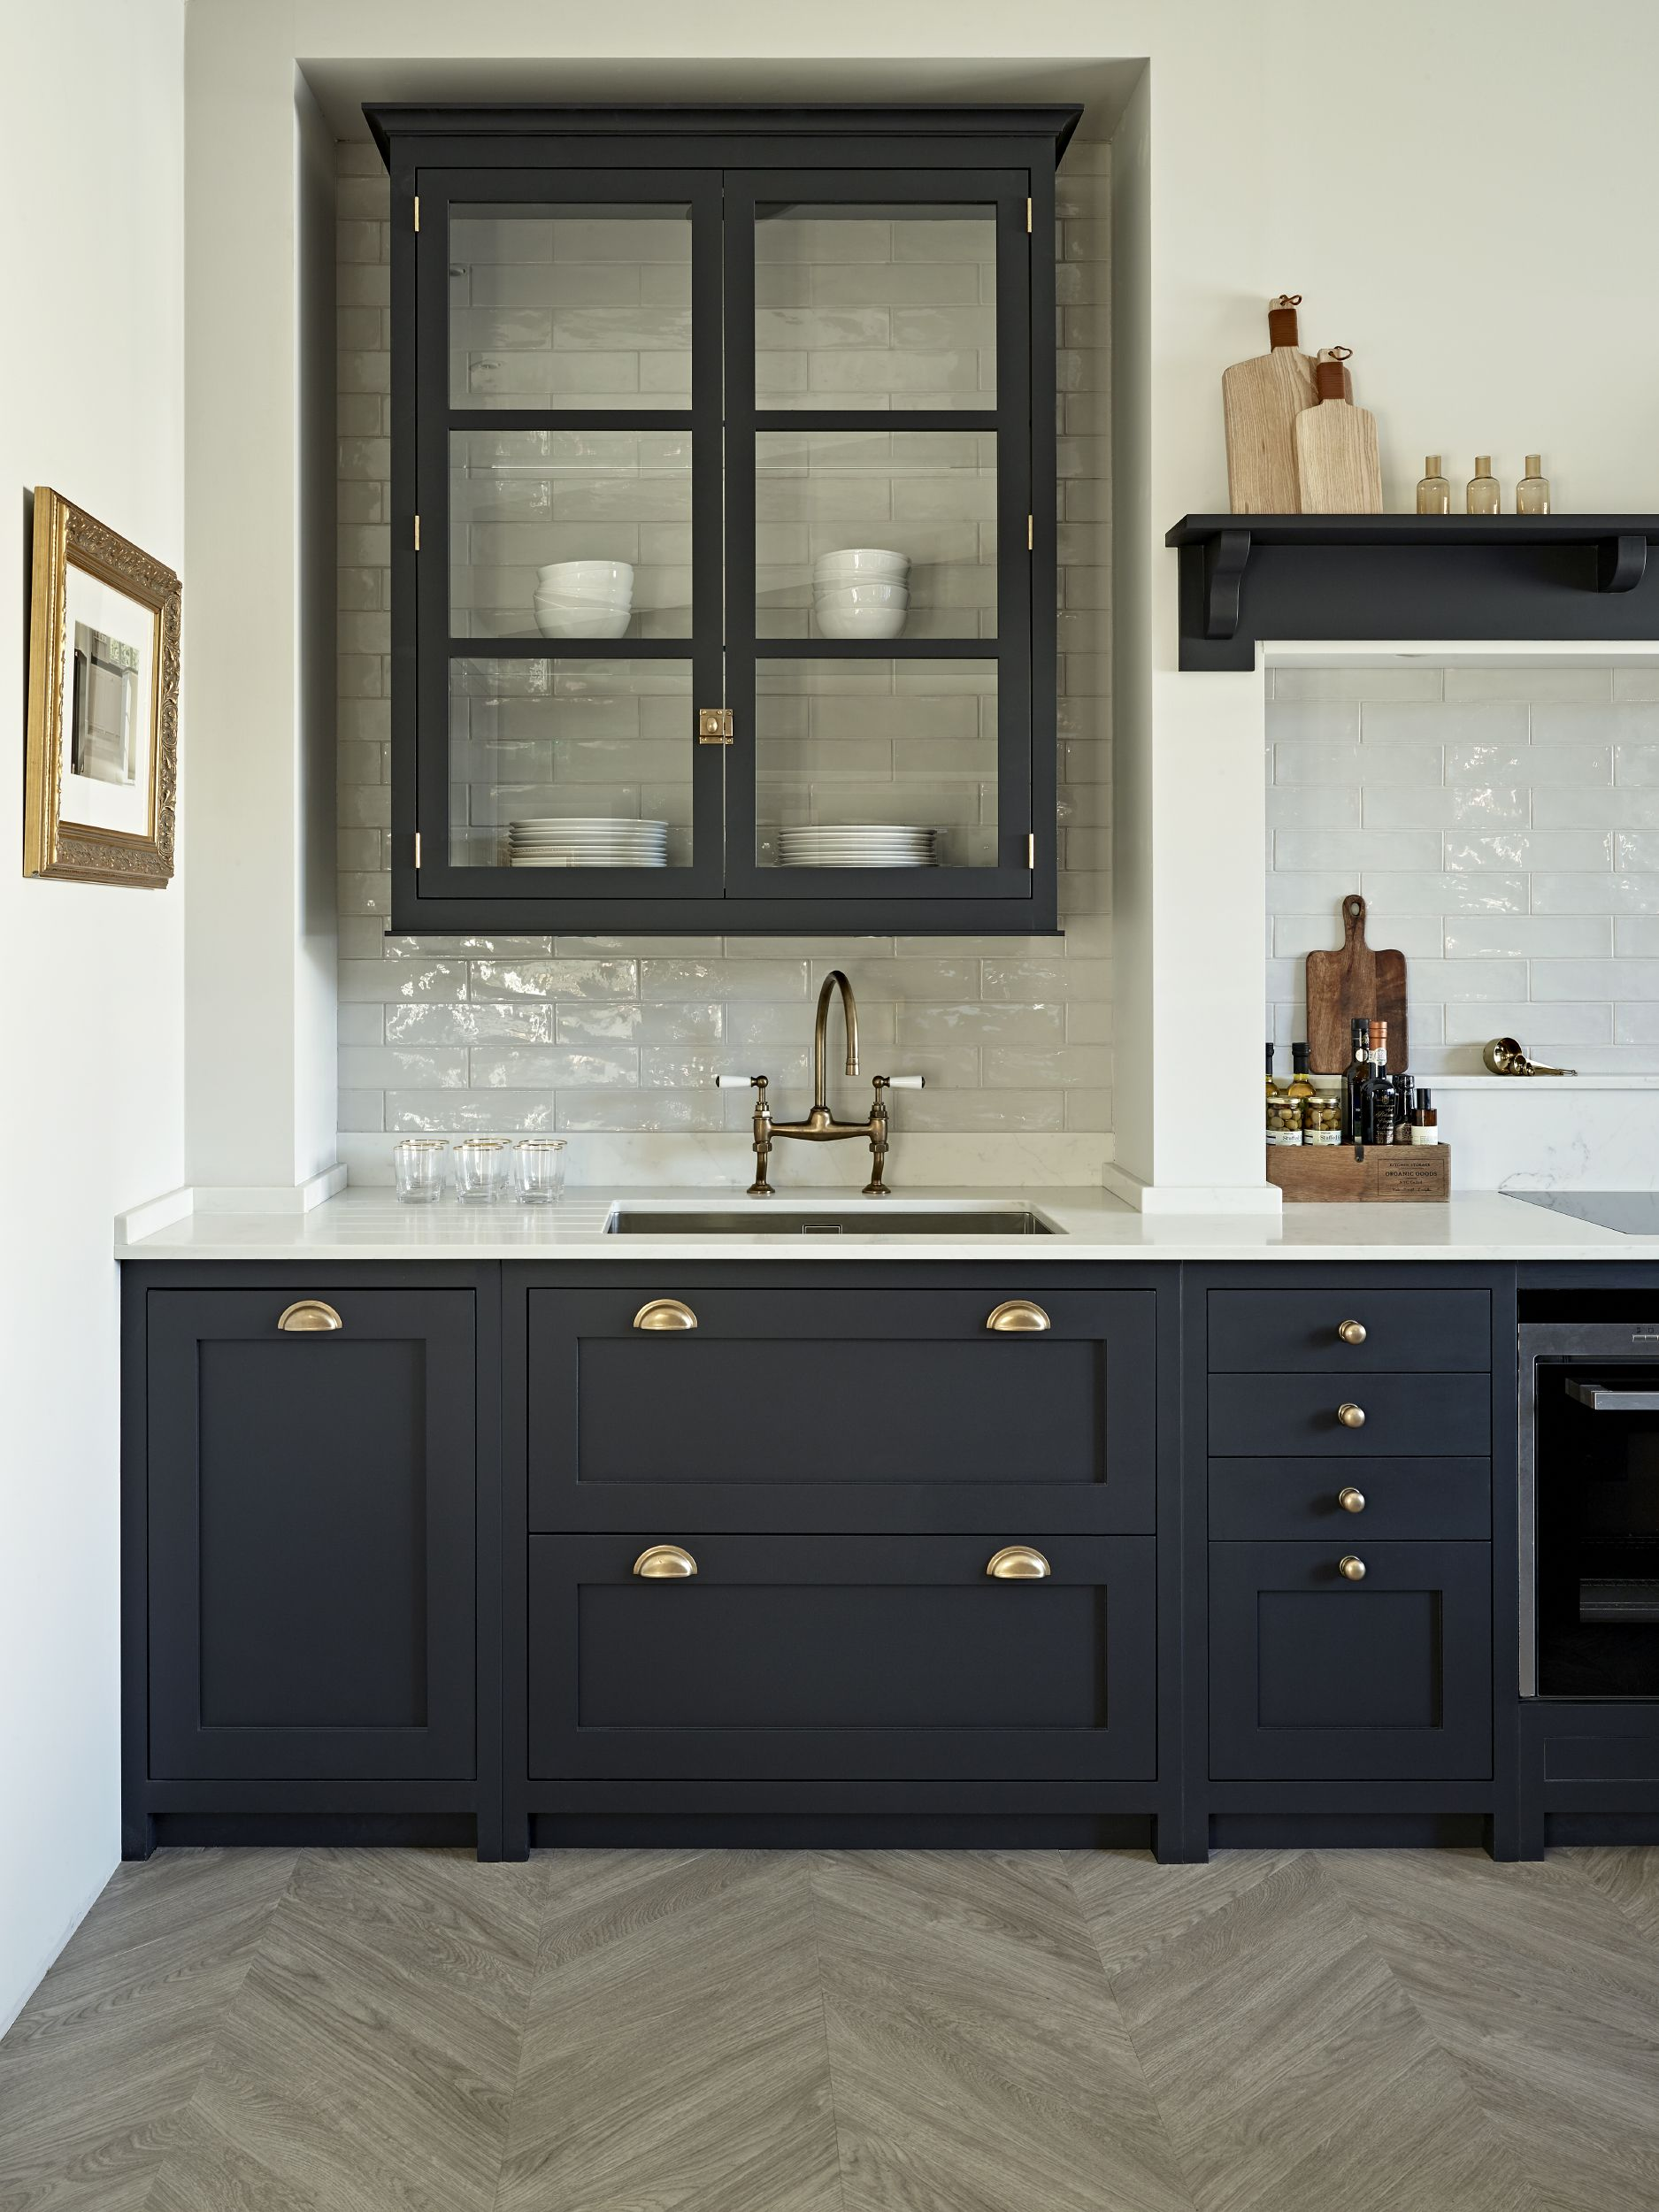 A Classic Original Shaker Kitchen From John Lewis Of Hungerford With A Modern T Contemporary Kitchen Design Contemporary Kitchen Cabinets Modern Kitchen Design